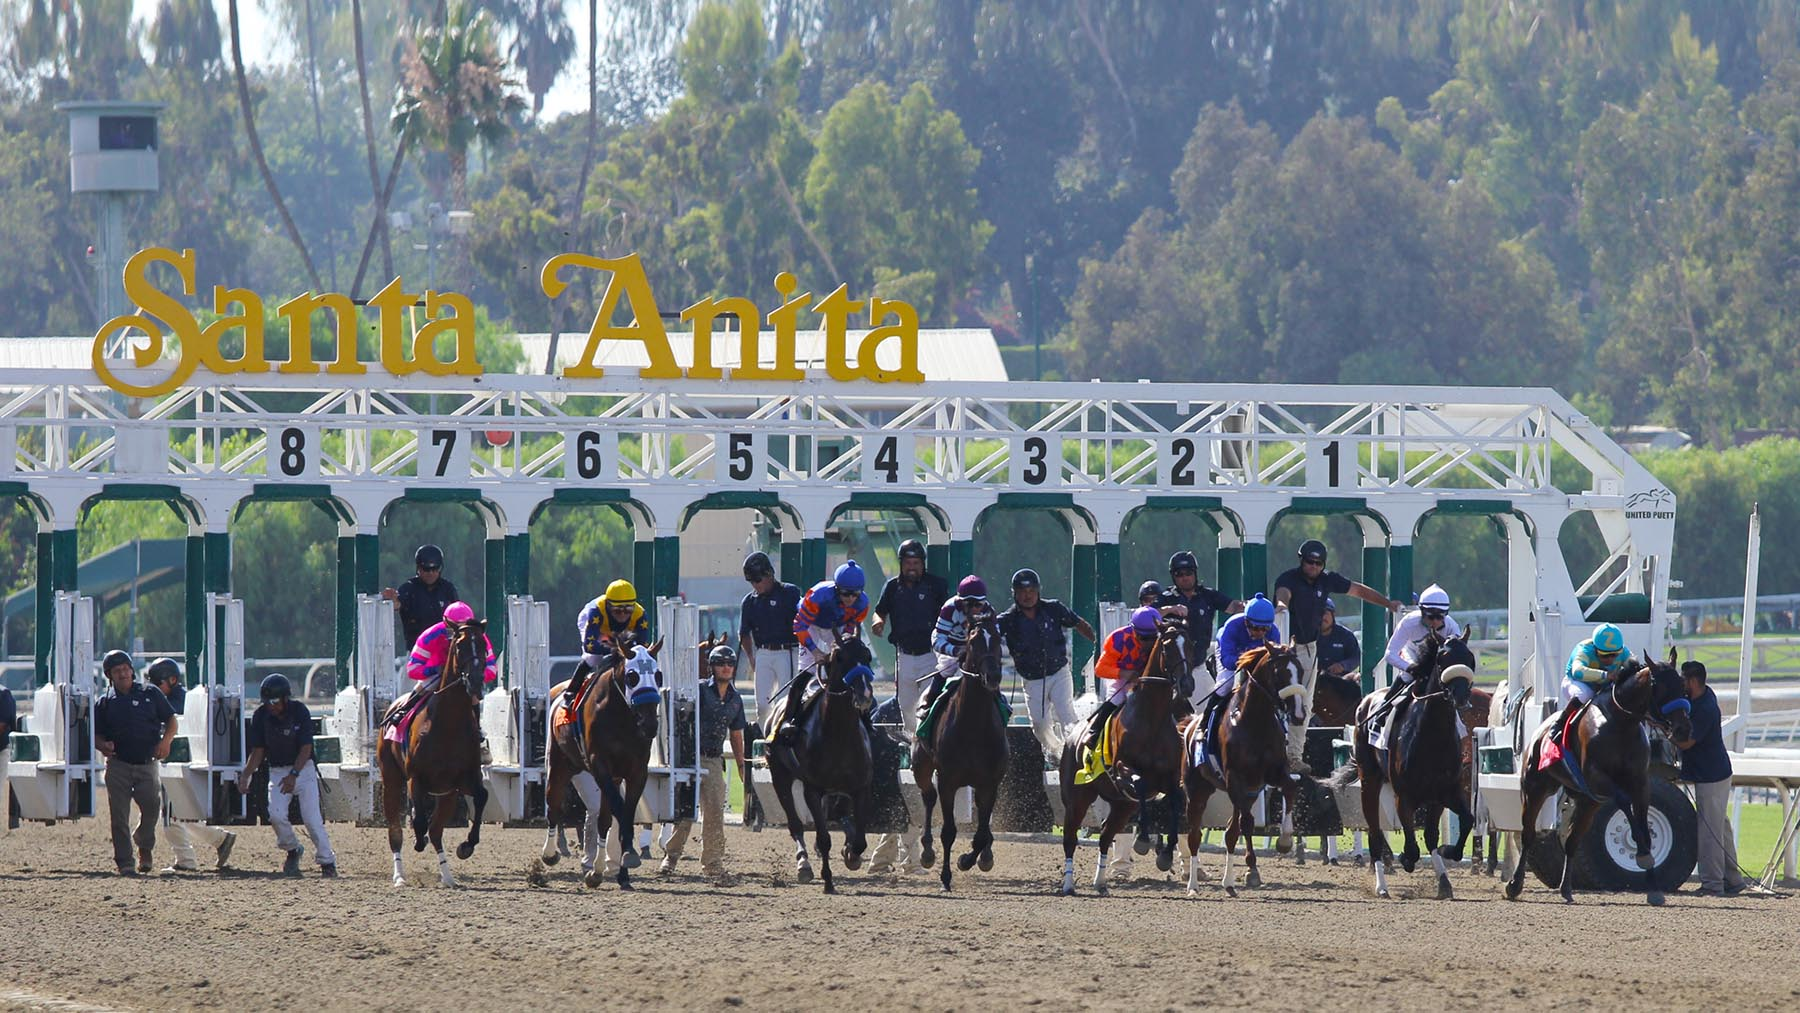 Jeff Siegel's Blog: Santa Anita Analysis/Wagering Strategies for Tuesday, Dec. 26, 2017